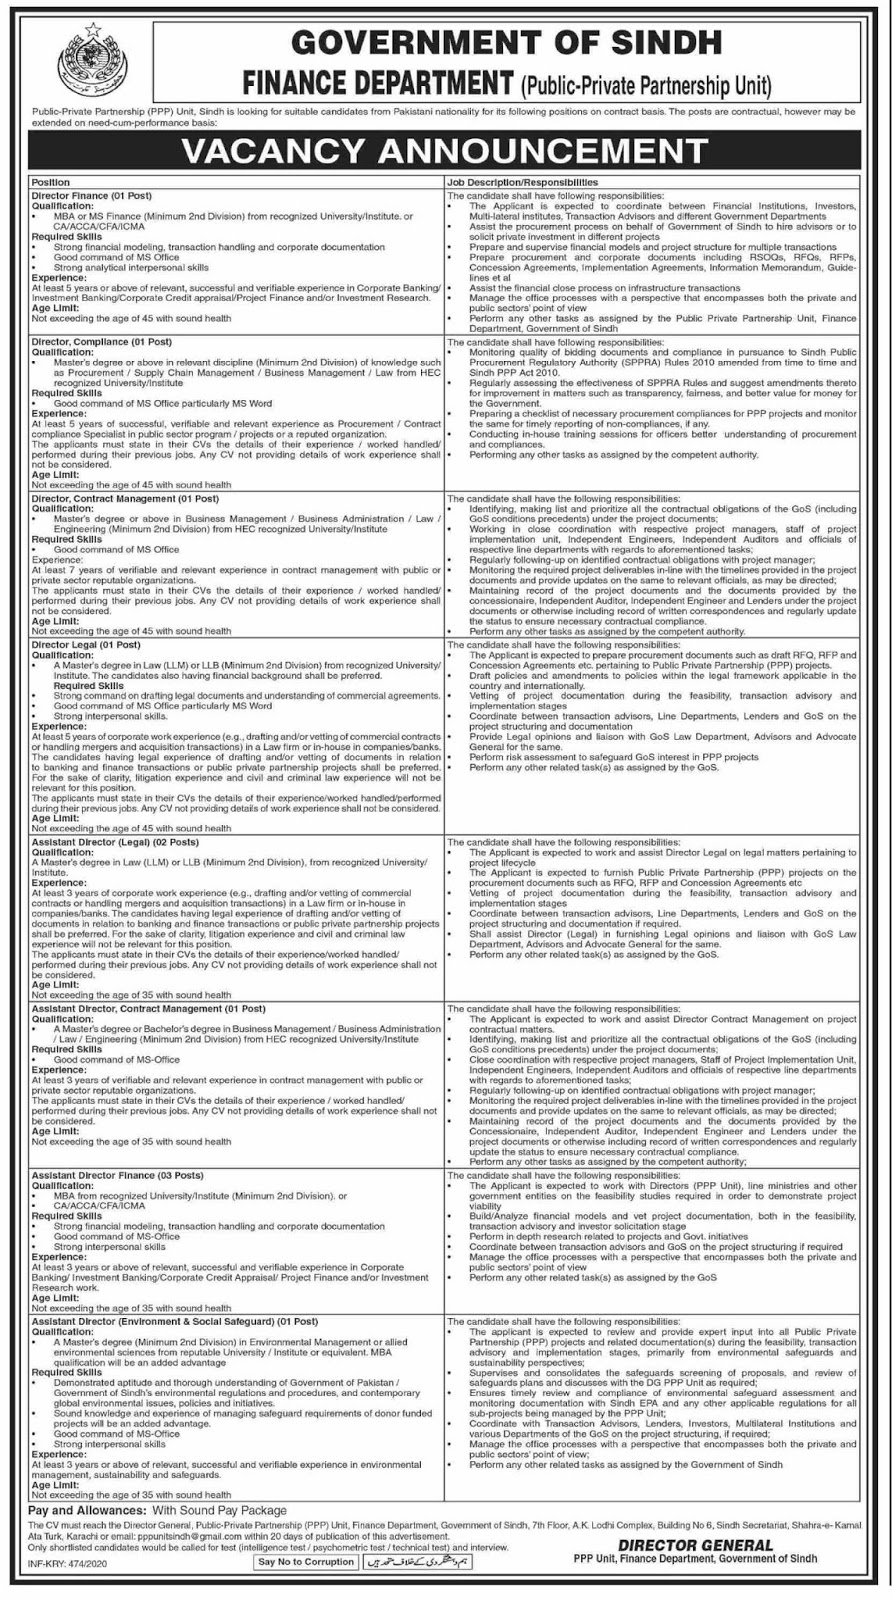 Finance Department Govt Of Sindh Jobs For Director Finance, Director Compliance and Others February 2020